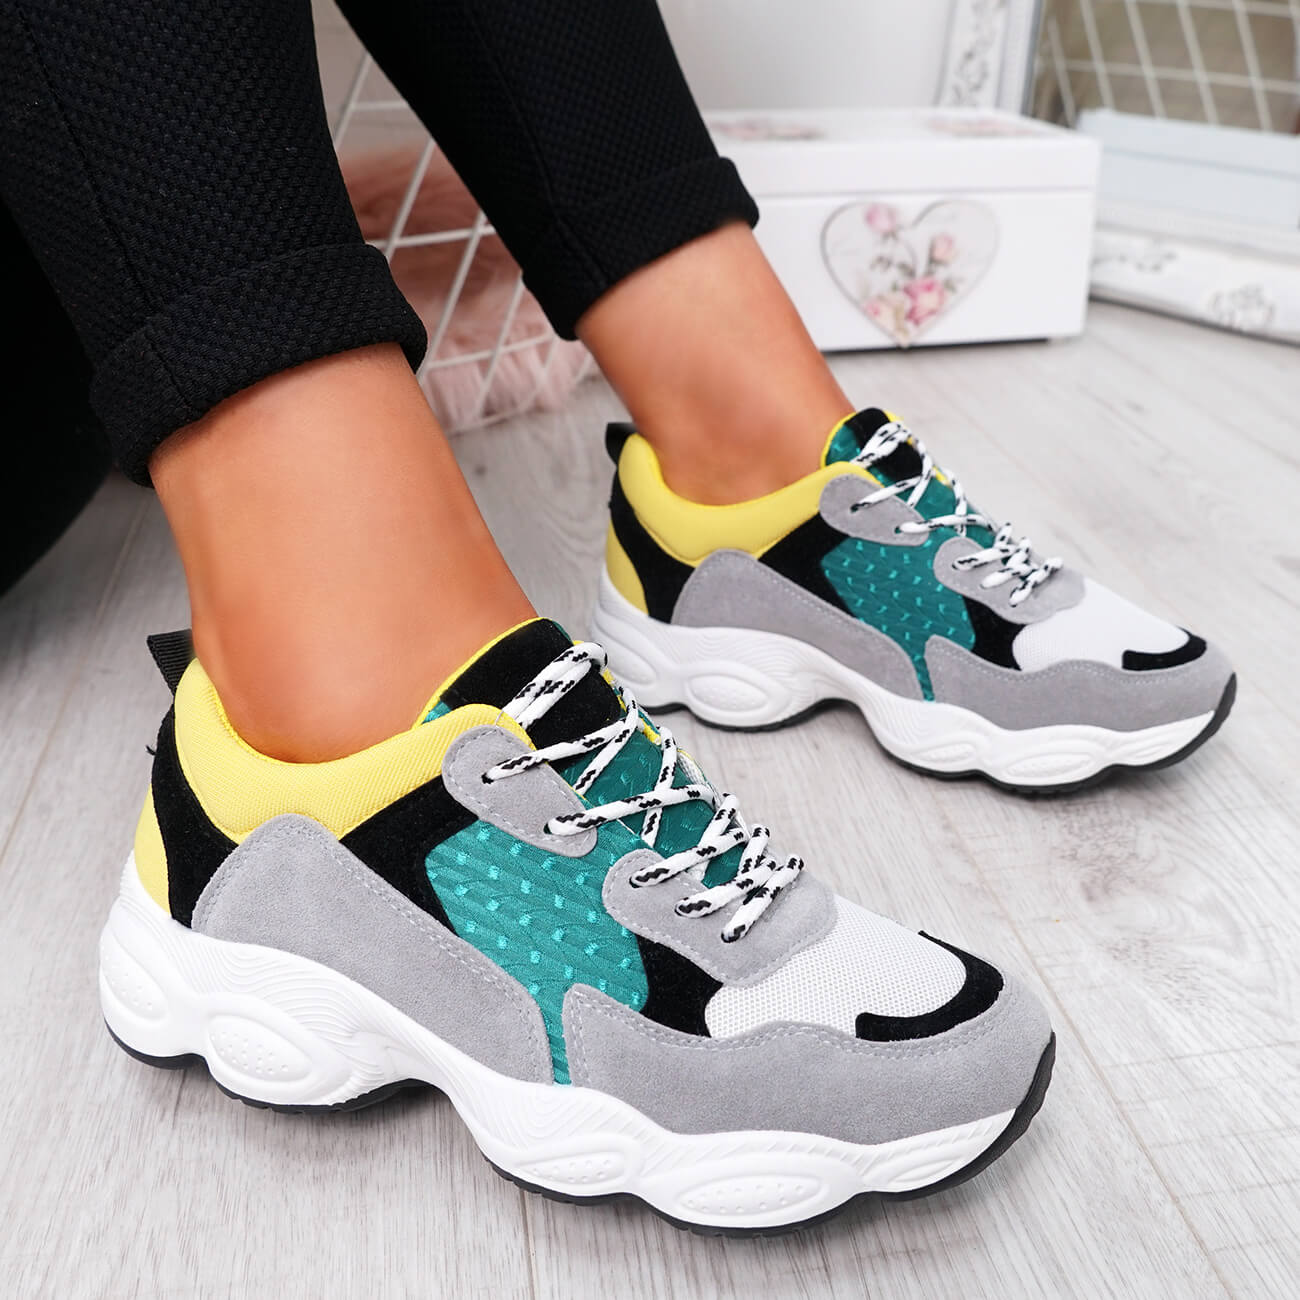 WOMENS-LADIES-RUNNING-GYM-CHUNKY-TRAINERS-SNEAKERS-SHOES-SIZE miniatura 23